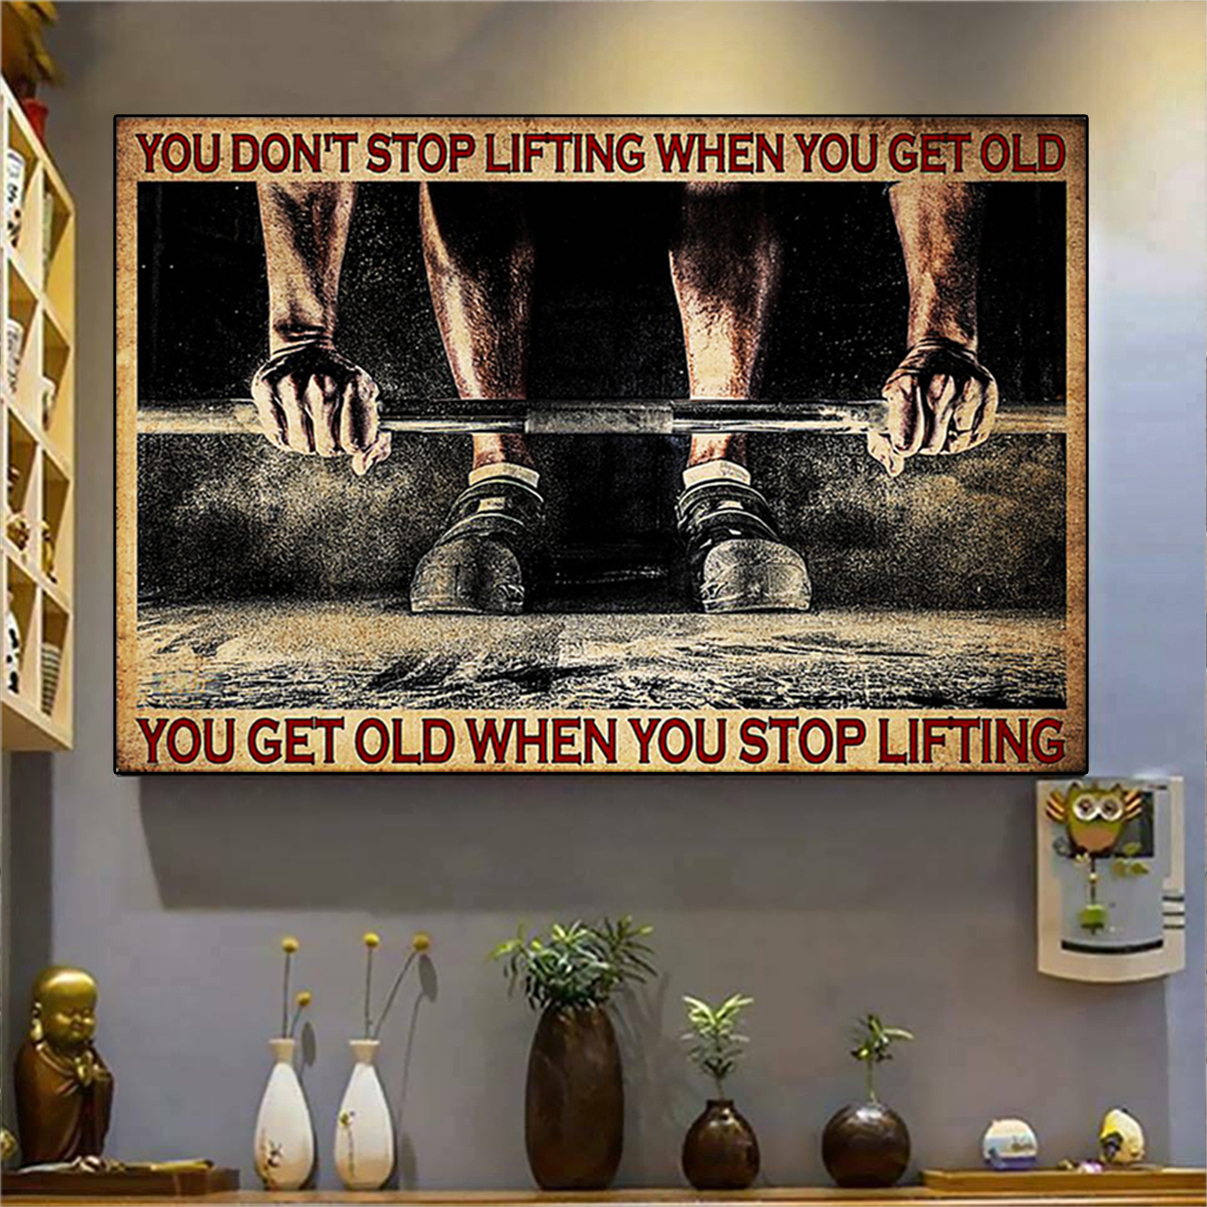 Fitness You don't stop lifting when you get old poster A2